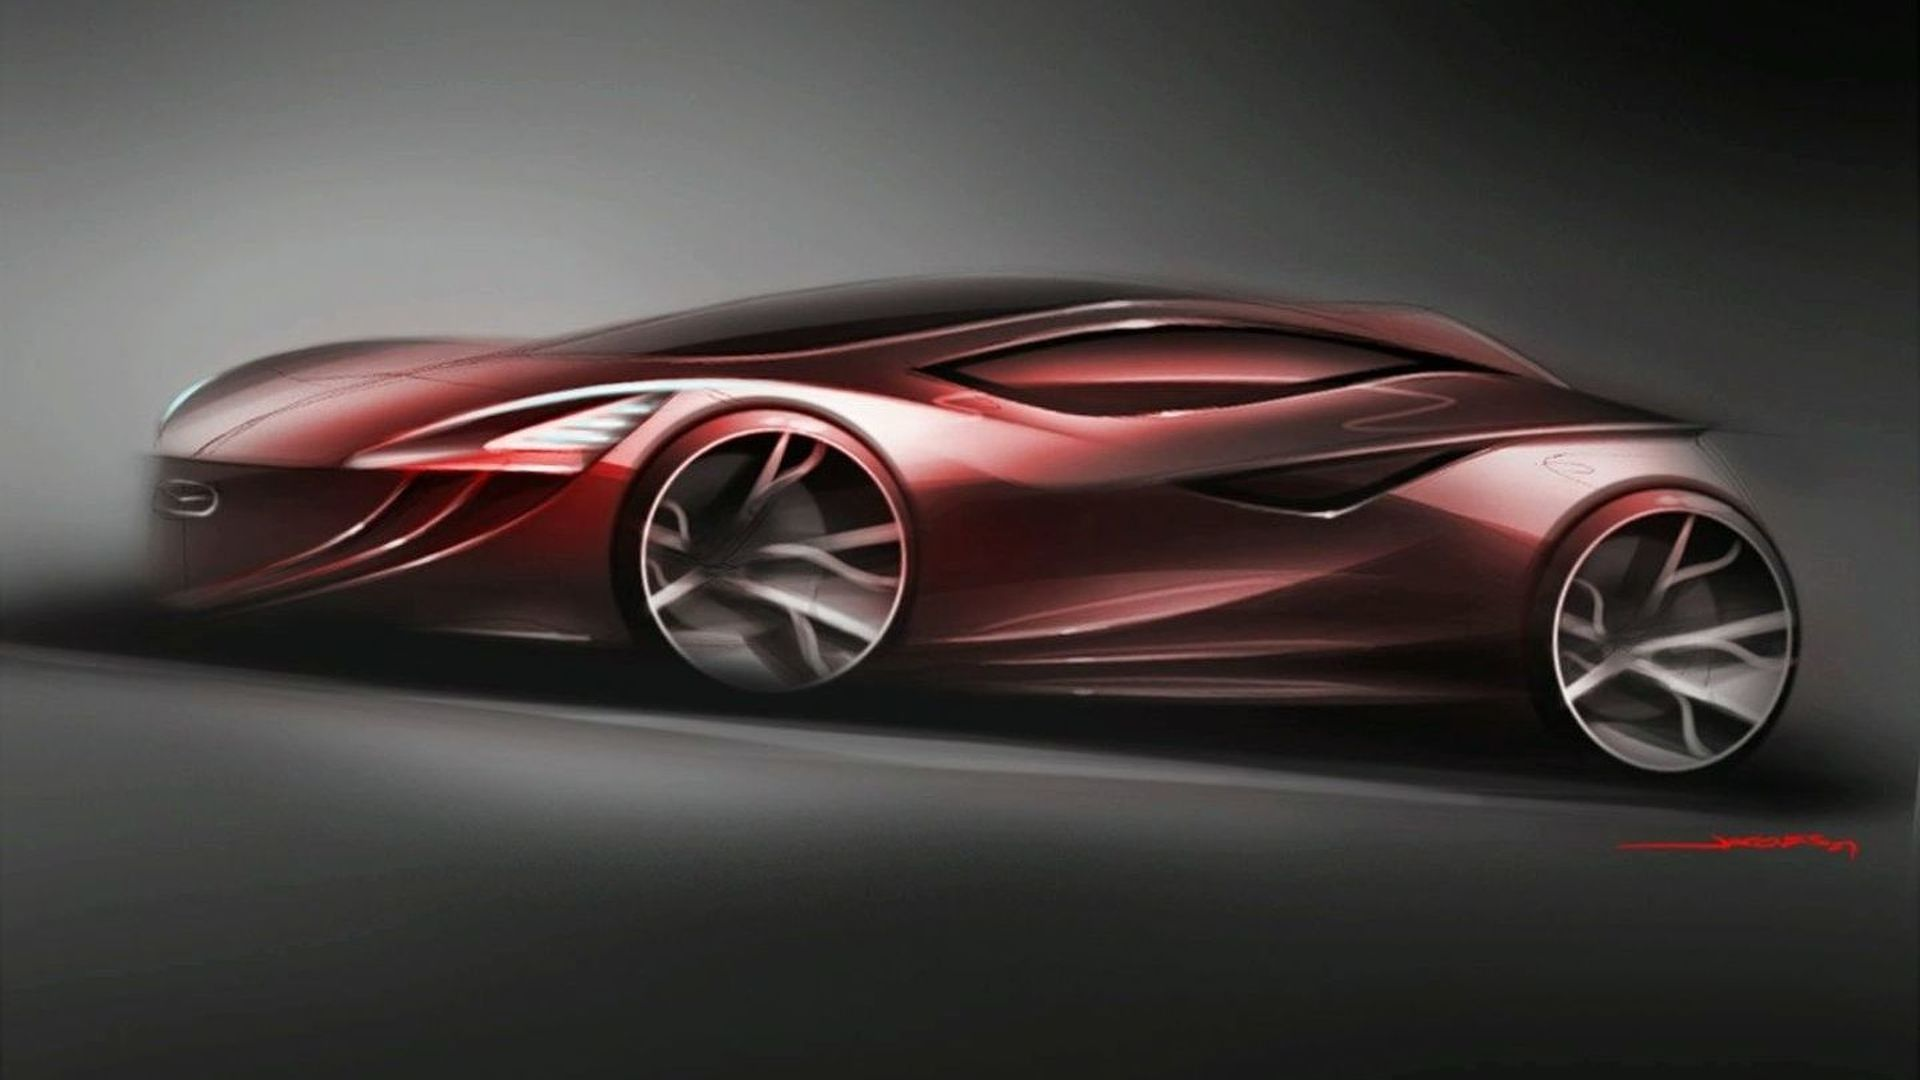 2012 Mazda RX 9 new details emerge